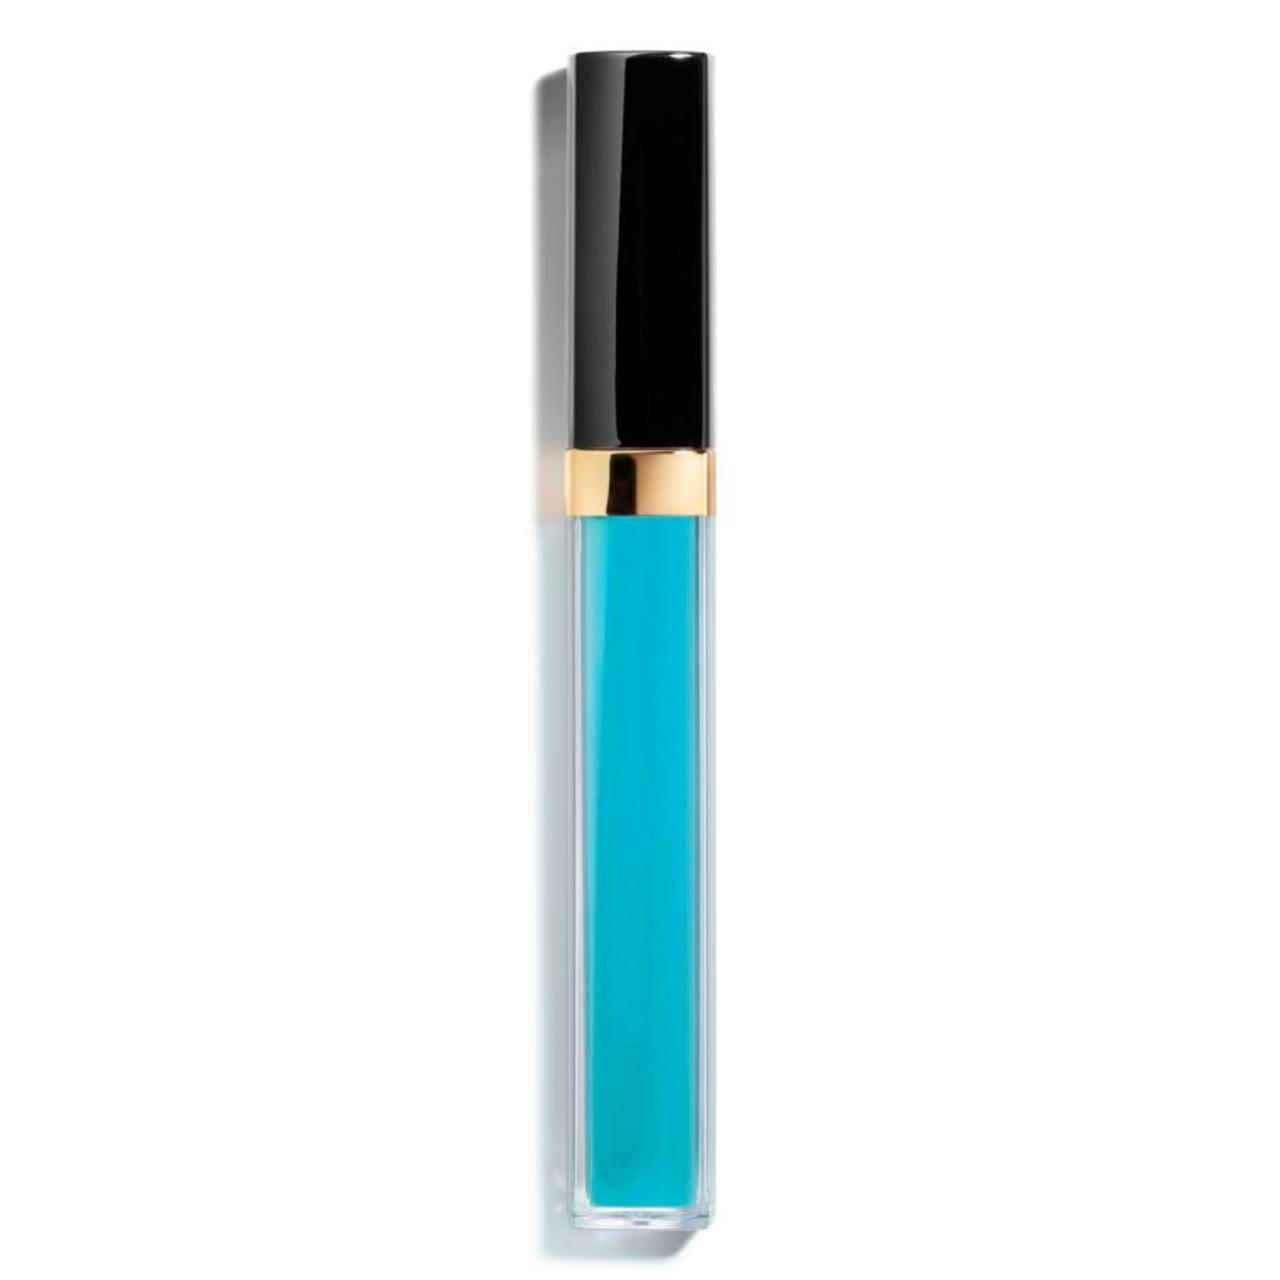 Chanel Rouge Coco Gloss (792 Aphrodite).